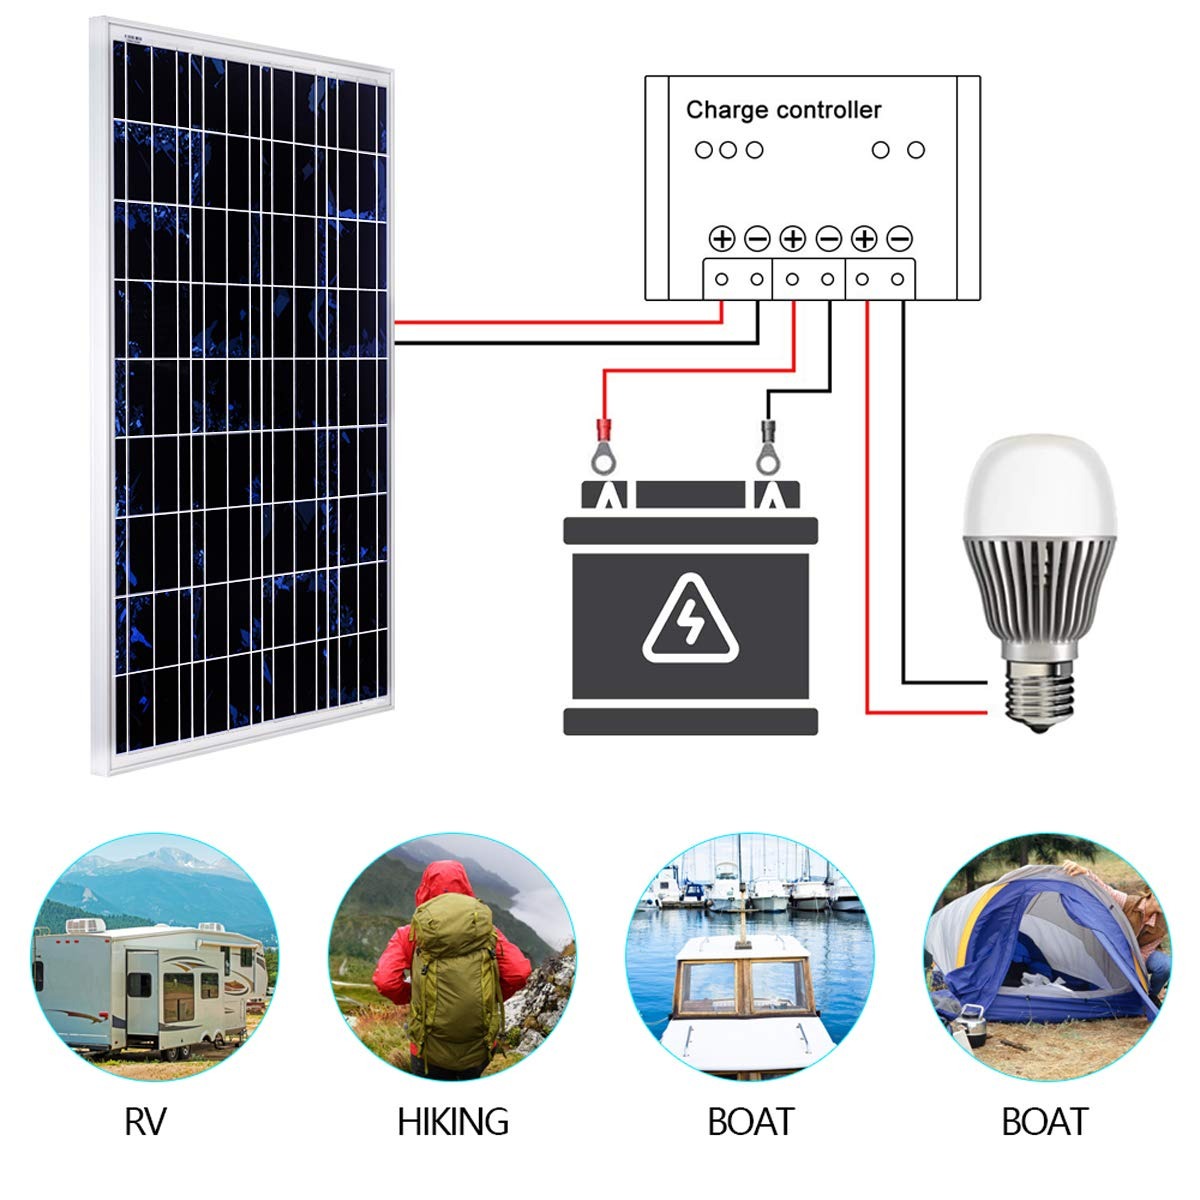 Caravan Boat or Yacht or Outside the Grid SARONIC 100W 12V Poly Solar Panel Photovoltaic PV Module for Charging a 12V in RV